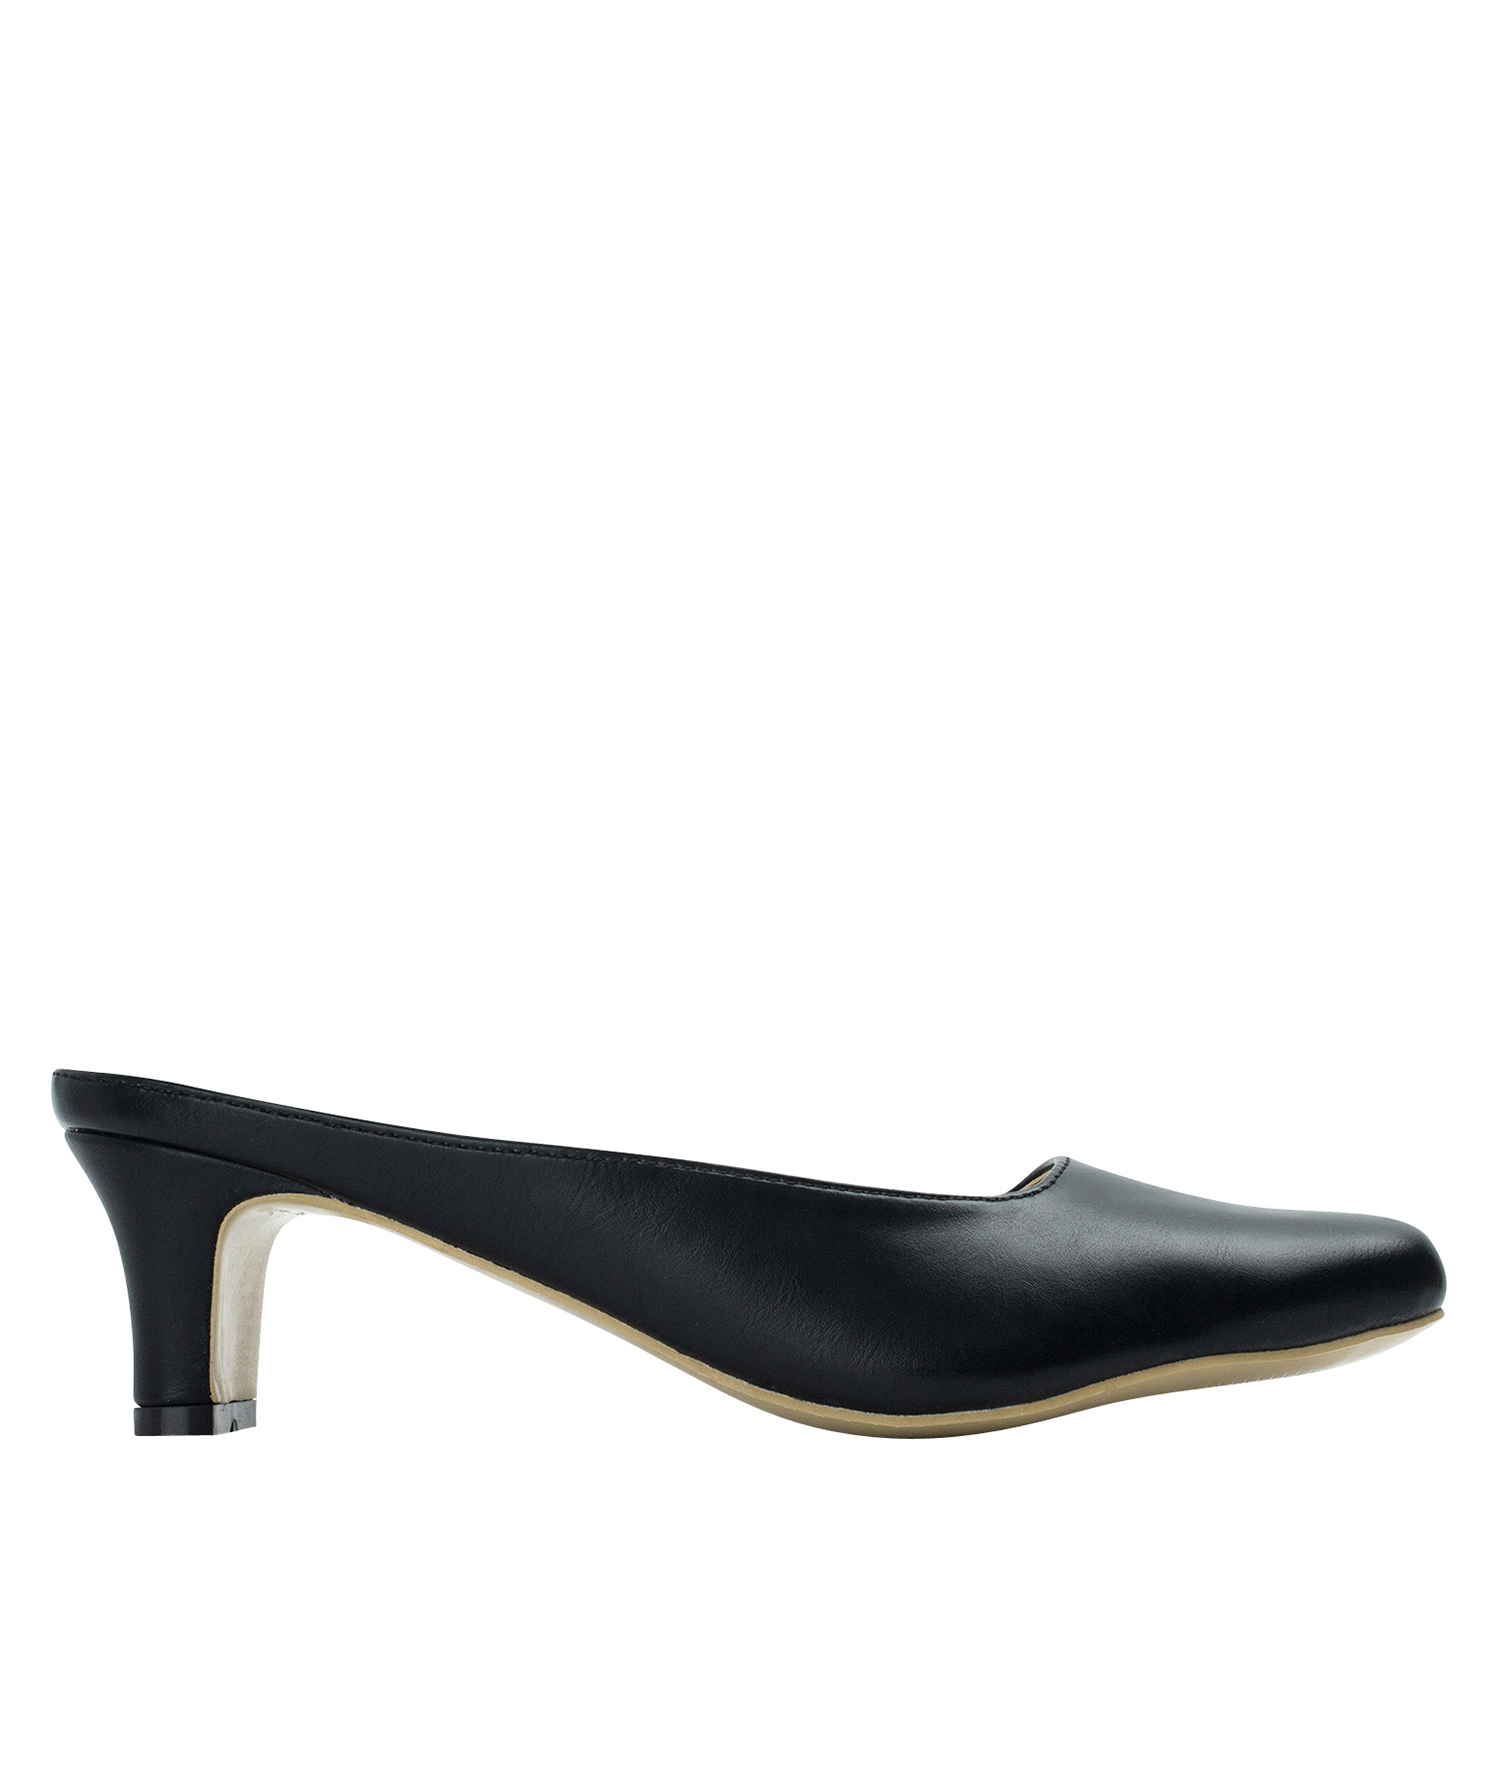 Annakastle Womens Faux Leather Mules Heeled Slippers Black